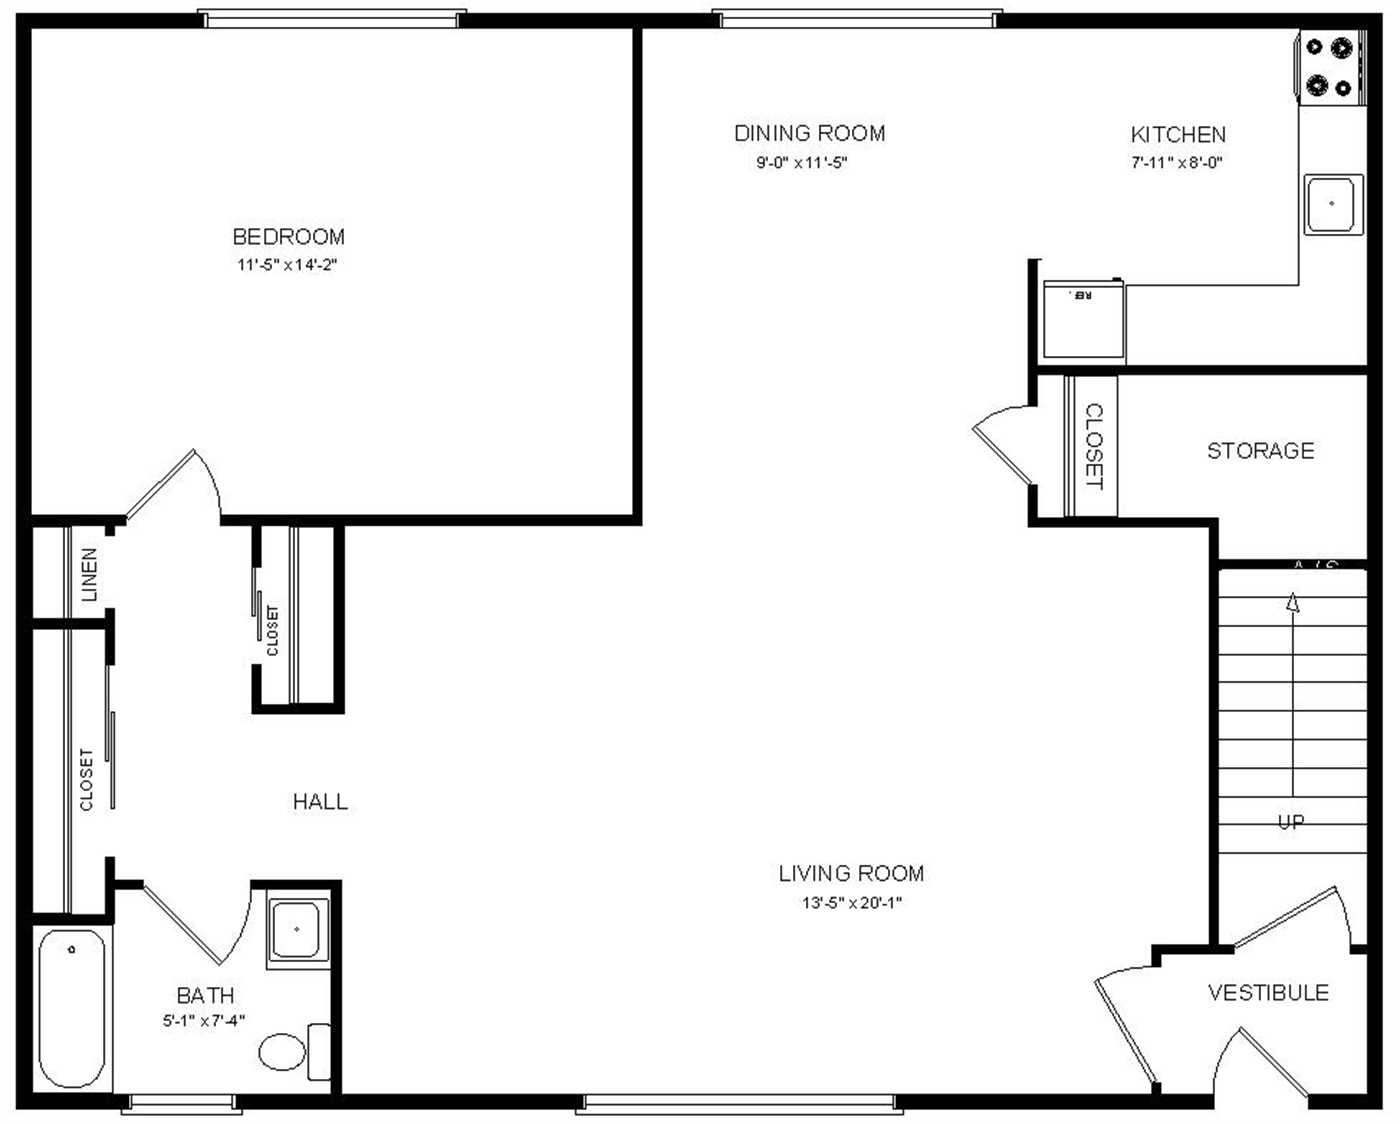 20 unique free floor plan templates house plans 6351 for Design your floor plan free